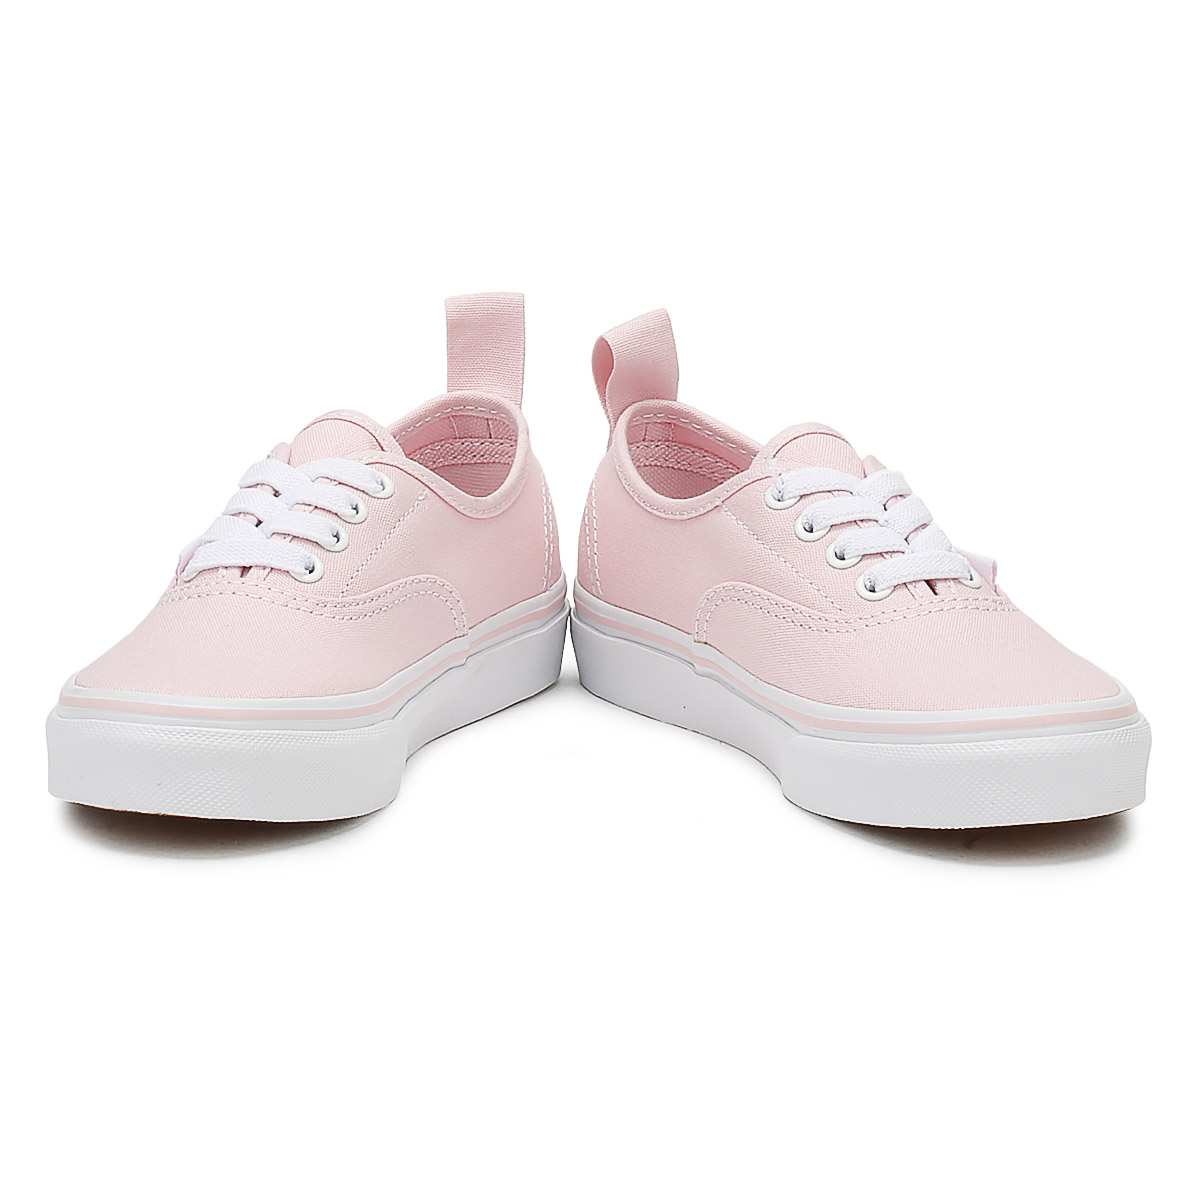 19f13f68326f Vans Kids Chalk Pink   True White Authentic Trainers Girls Skate Shoes